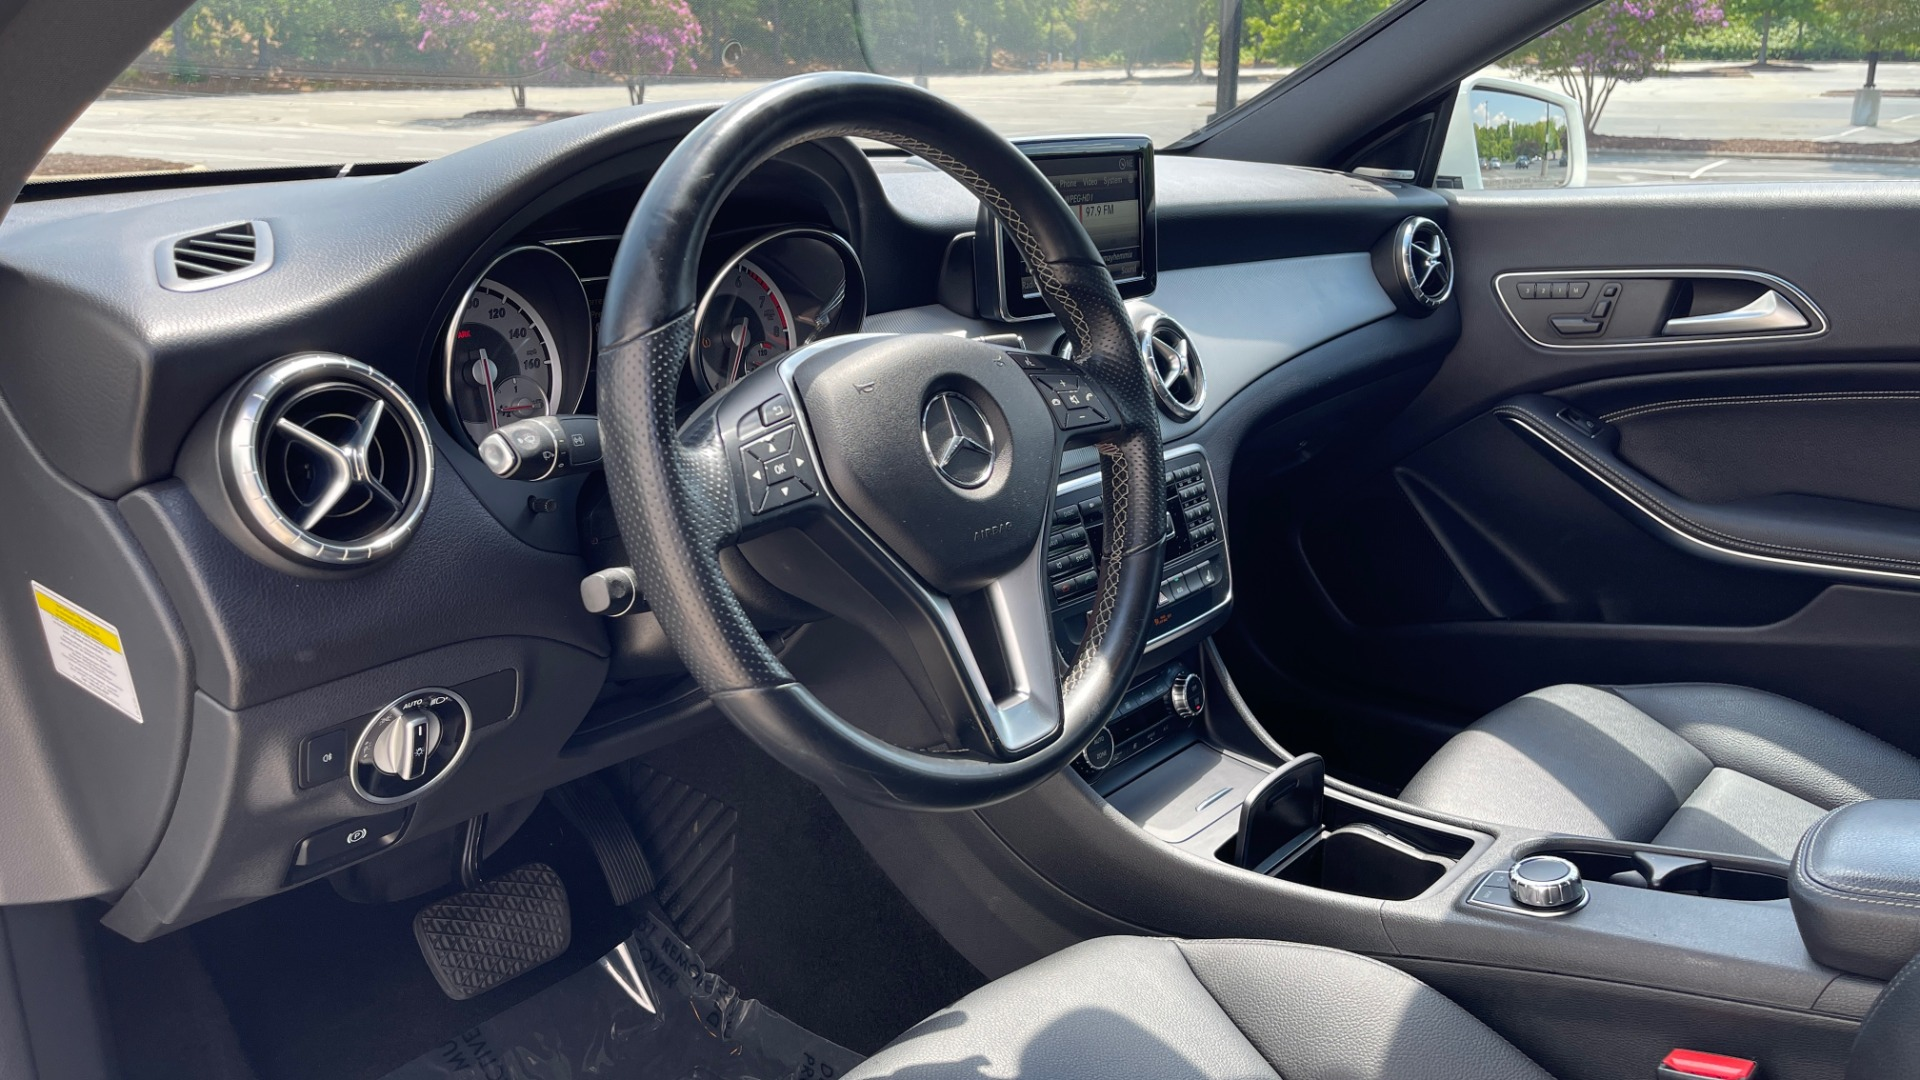 Used 2014 Mercedes-Benz CLA-Class 250 PREMIUM / NAV / MULTIMEDIA PKG / PANO-ROOF / REARVIEW for sale $19,495 at Formula Imports in Charlotte NC 28227 23